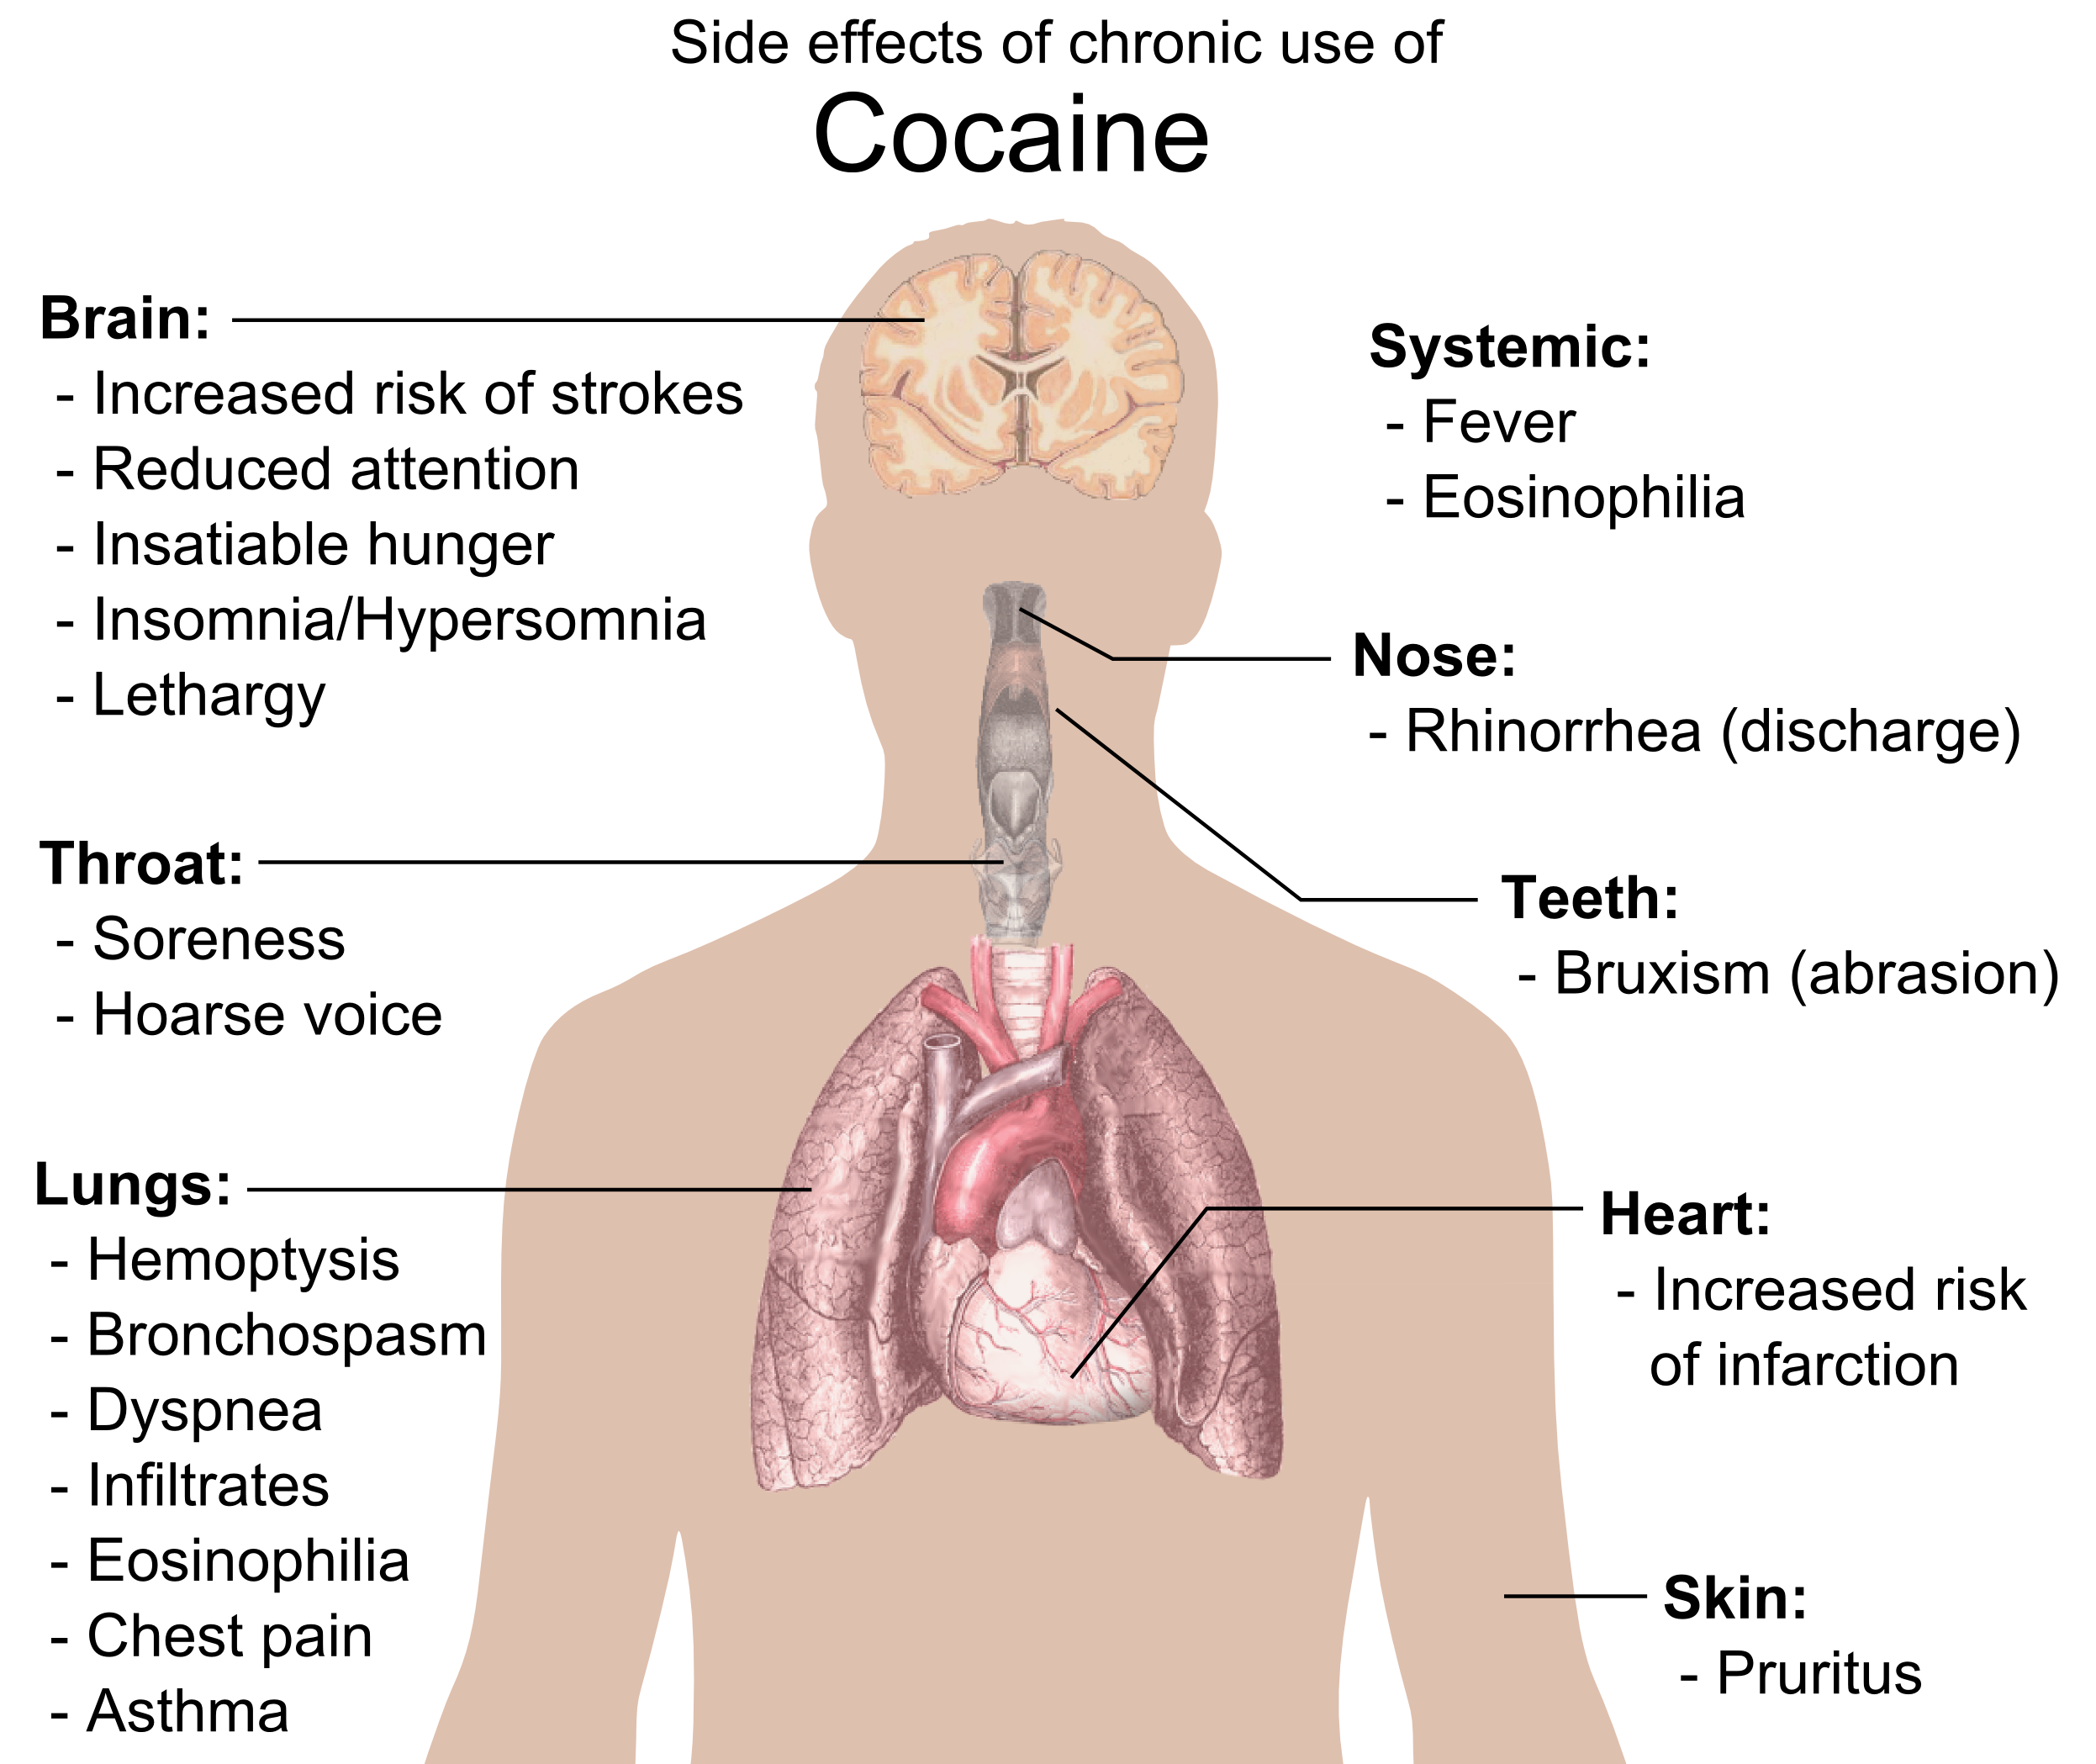 File:Side effects of chronic use of Cocaine.png